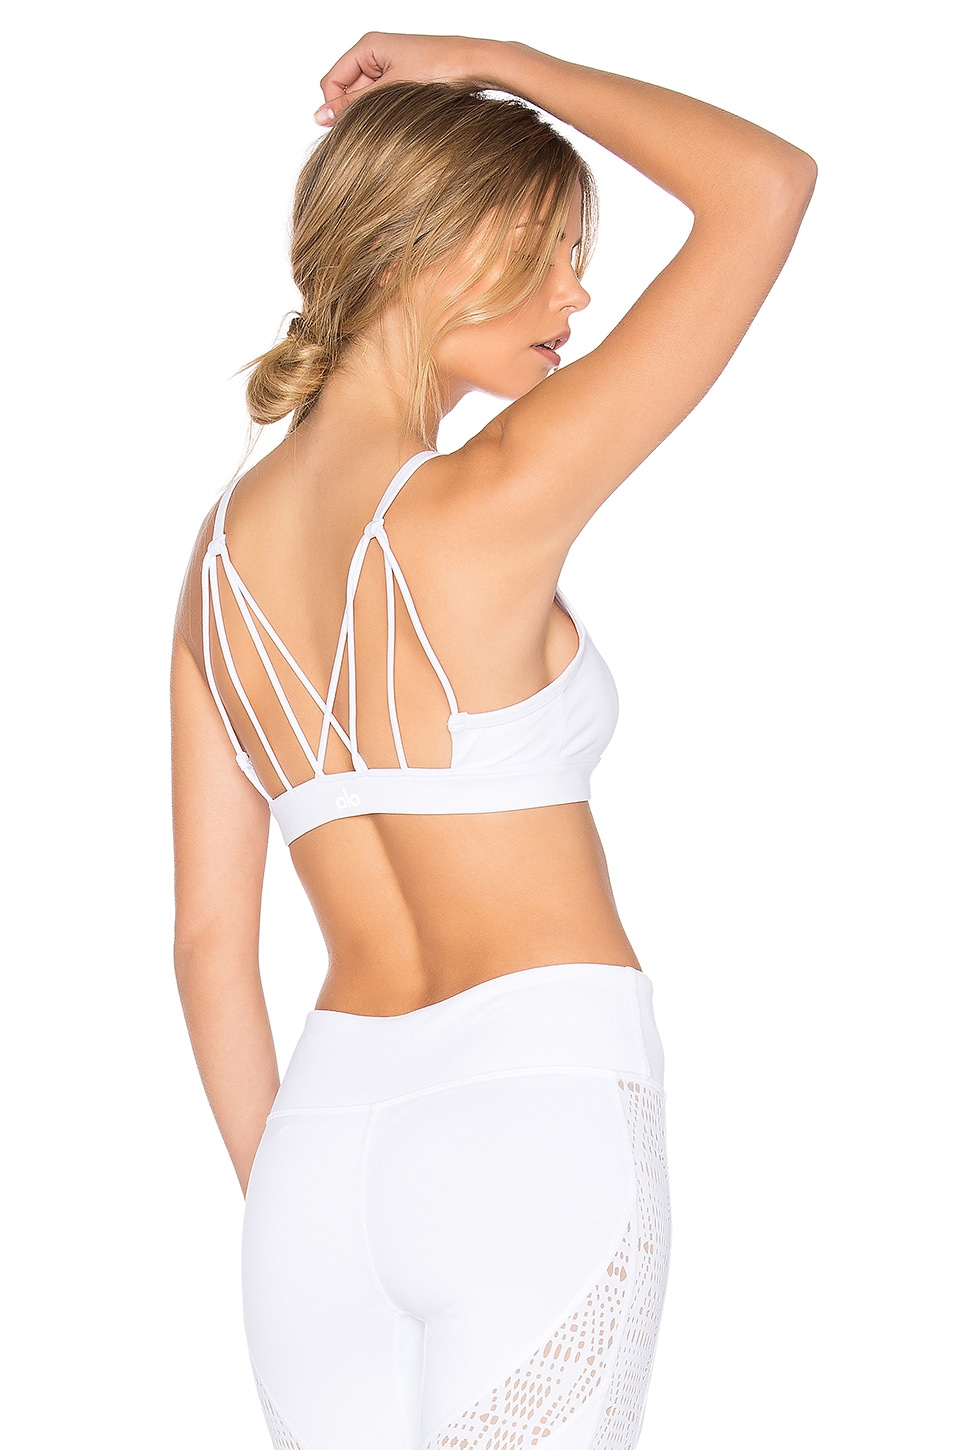 alo Glow Sports Bra in White Glossy